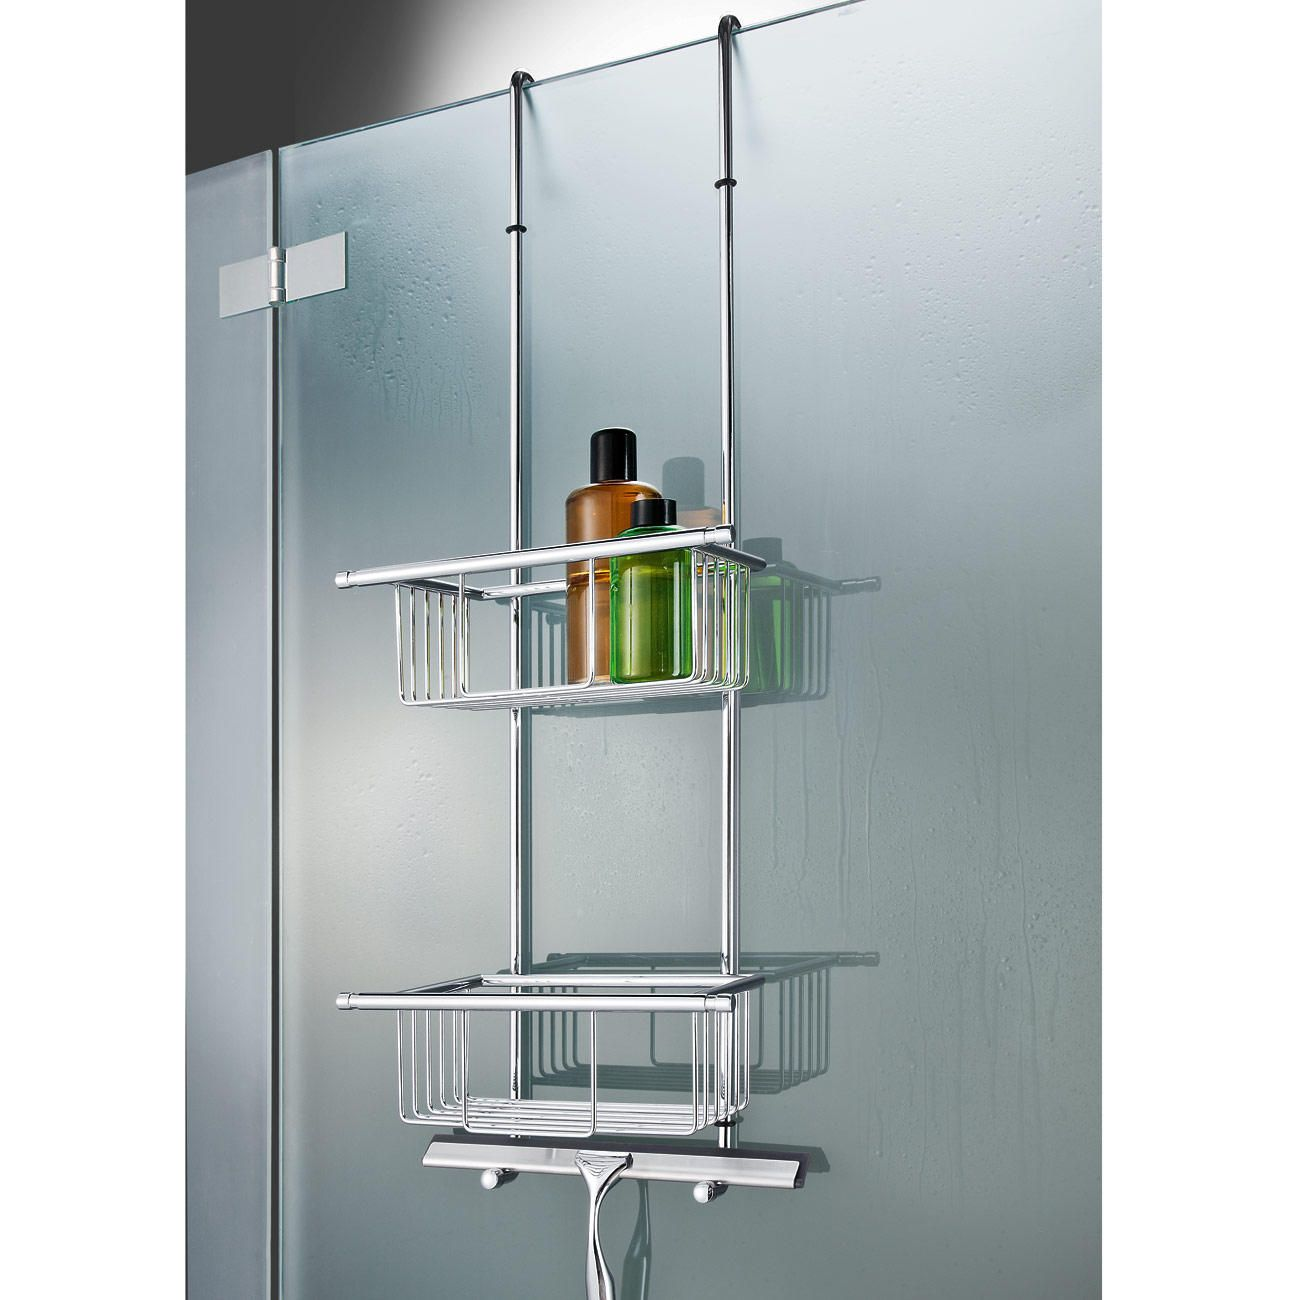 Bath Towel Holder or Hanging Shower Shelf Rarely is a perfect ...